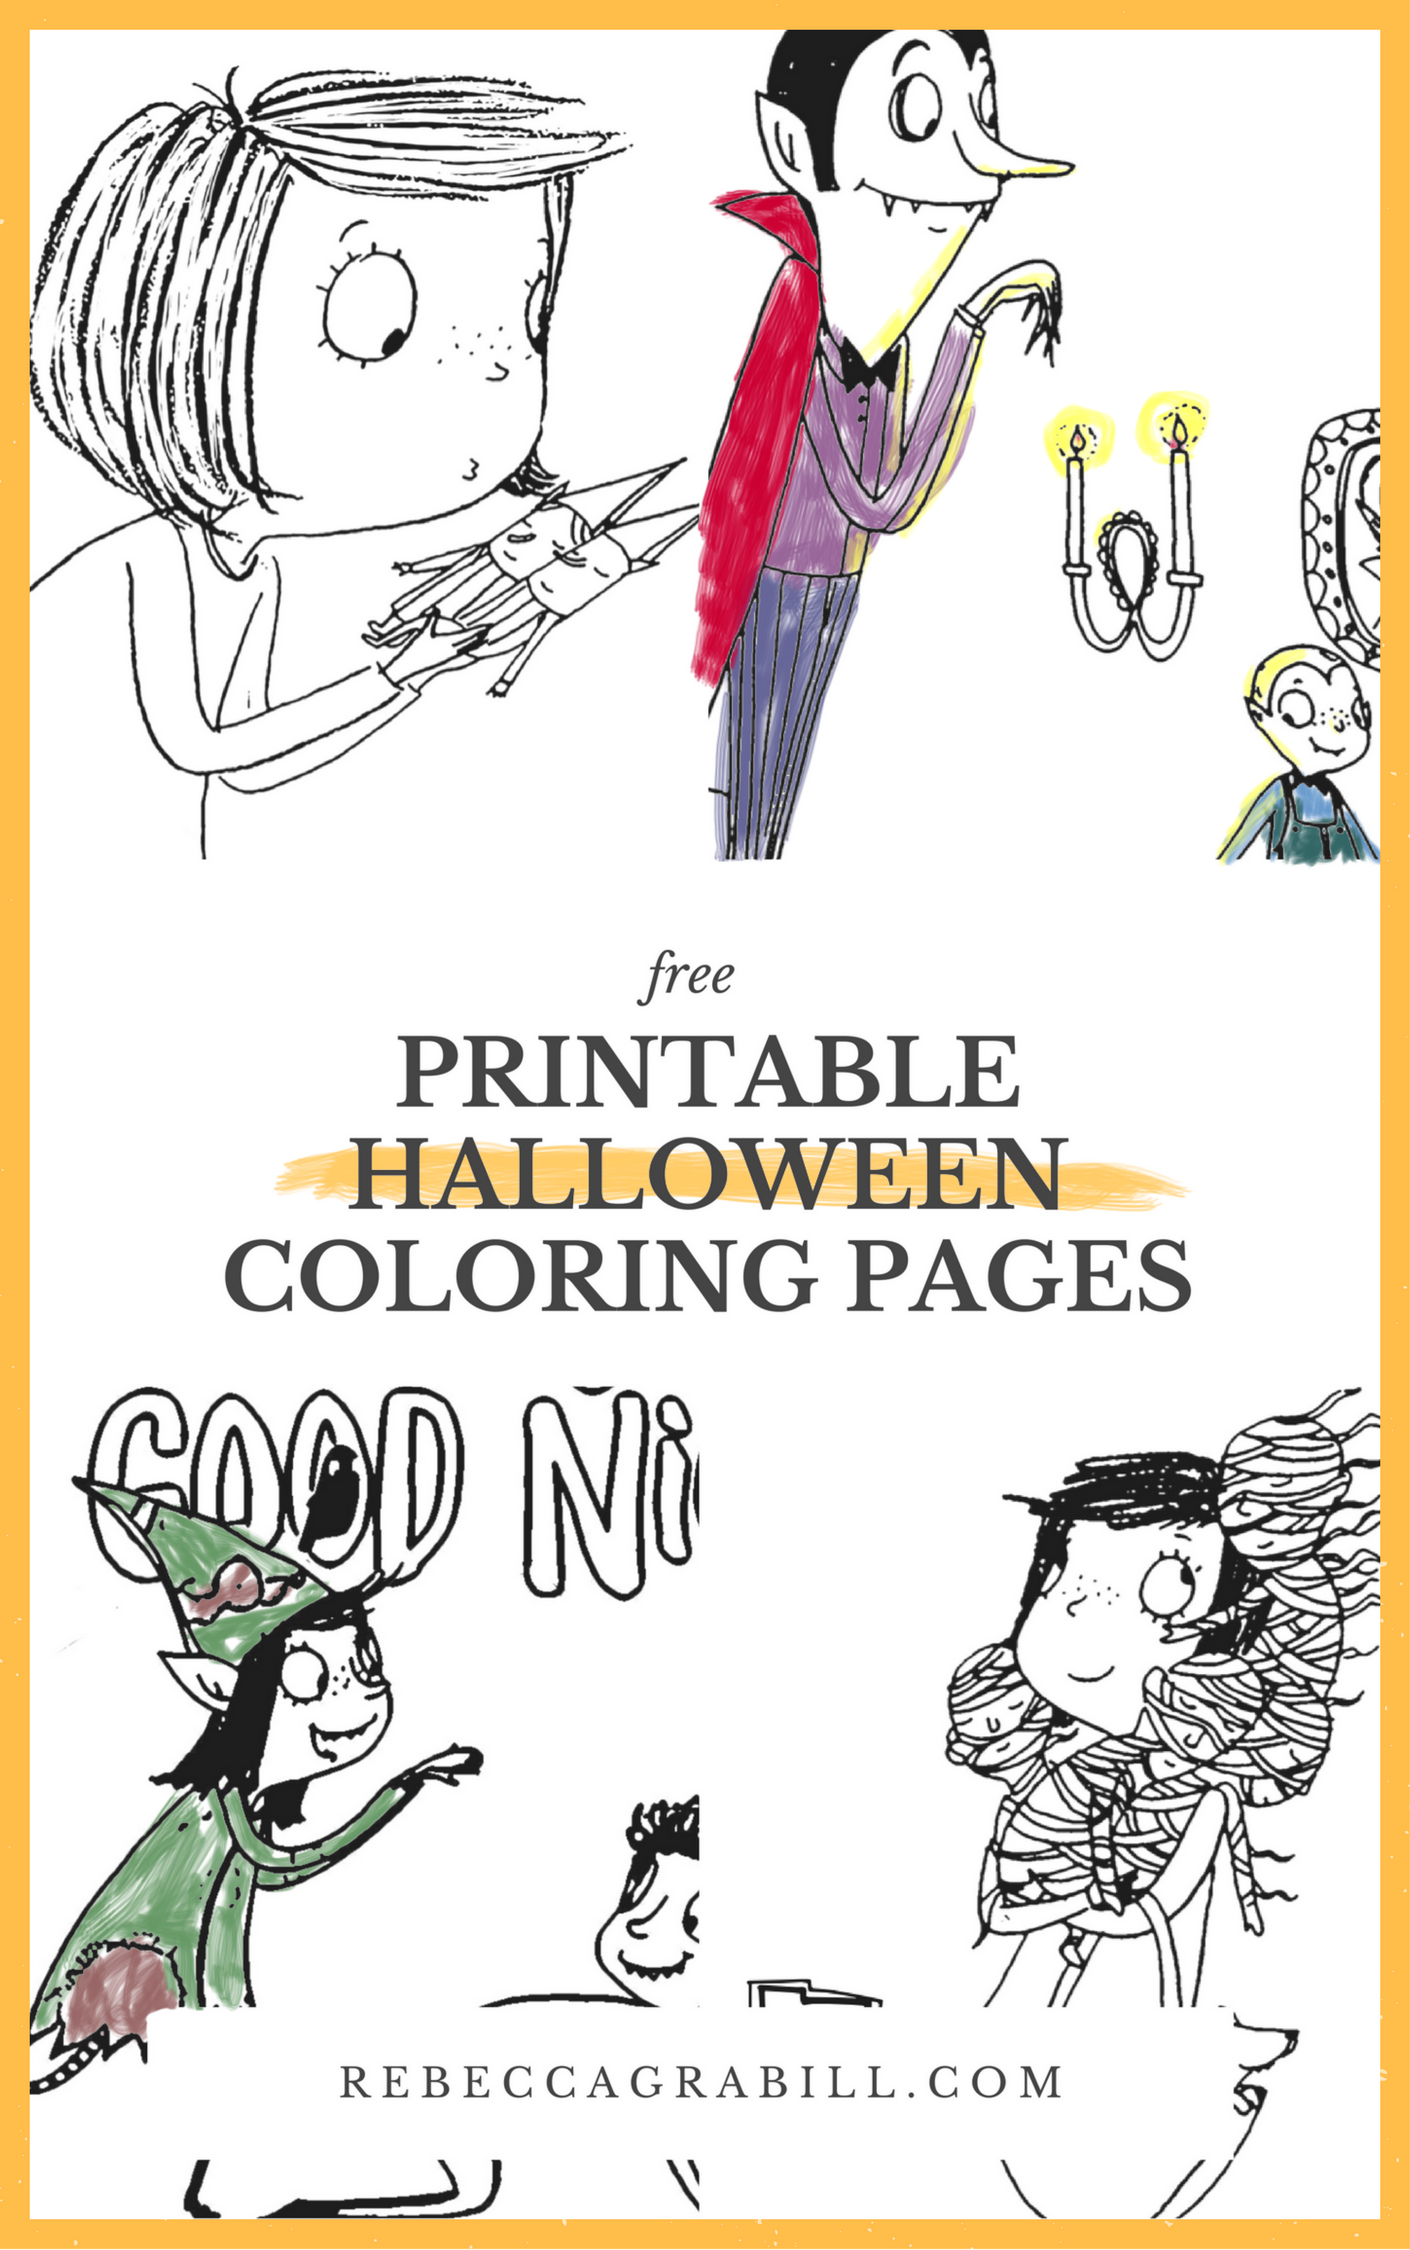 Printable halloween coloring pages based on the picture book Halloween Good Night by Rebecca Grabill, Ella Okstad illus